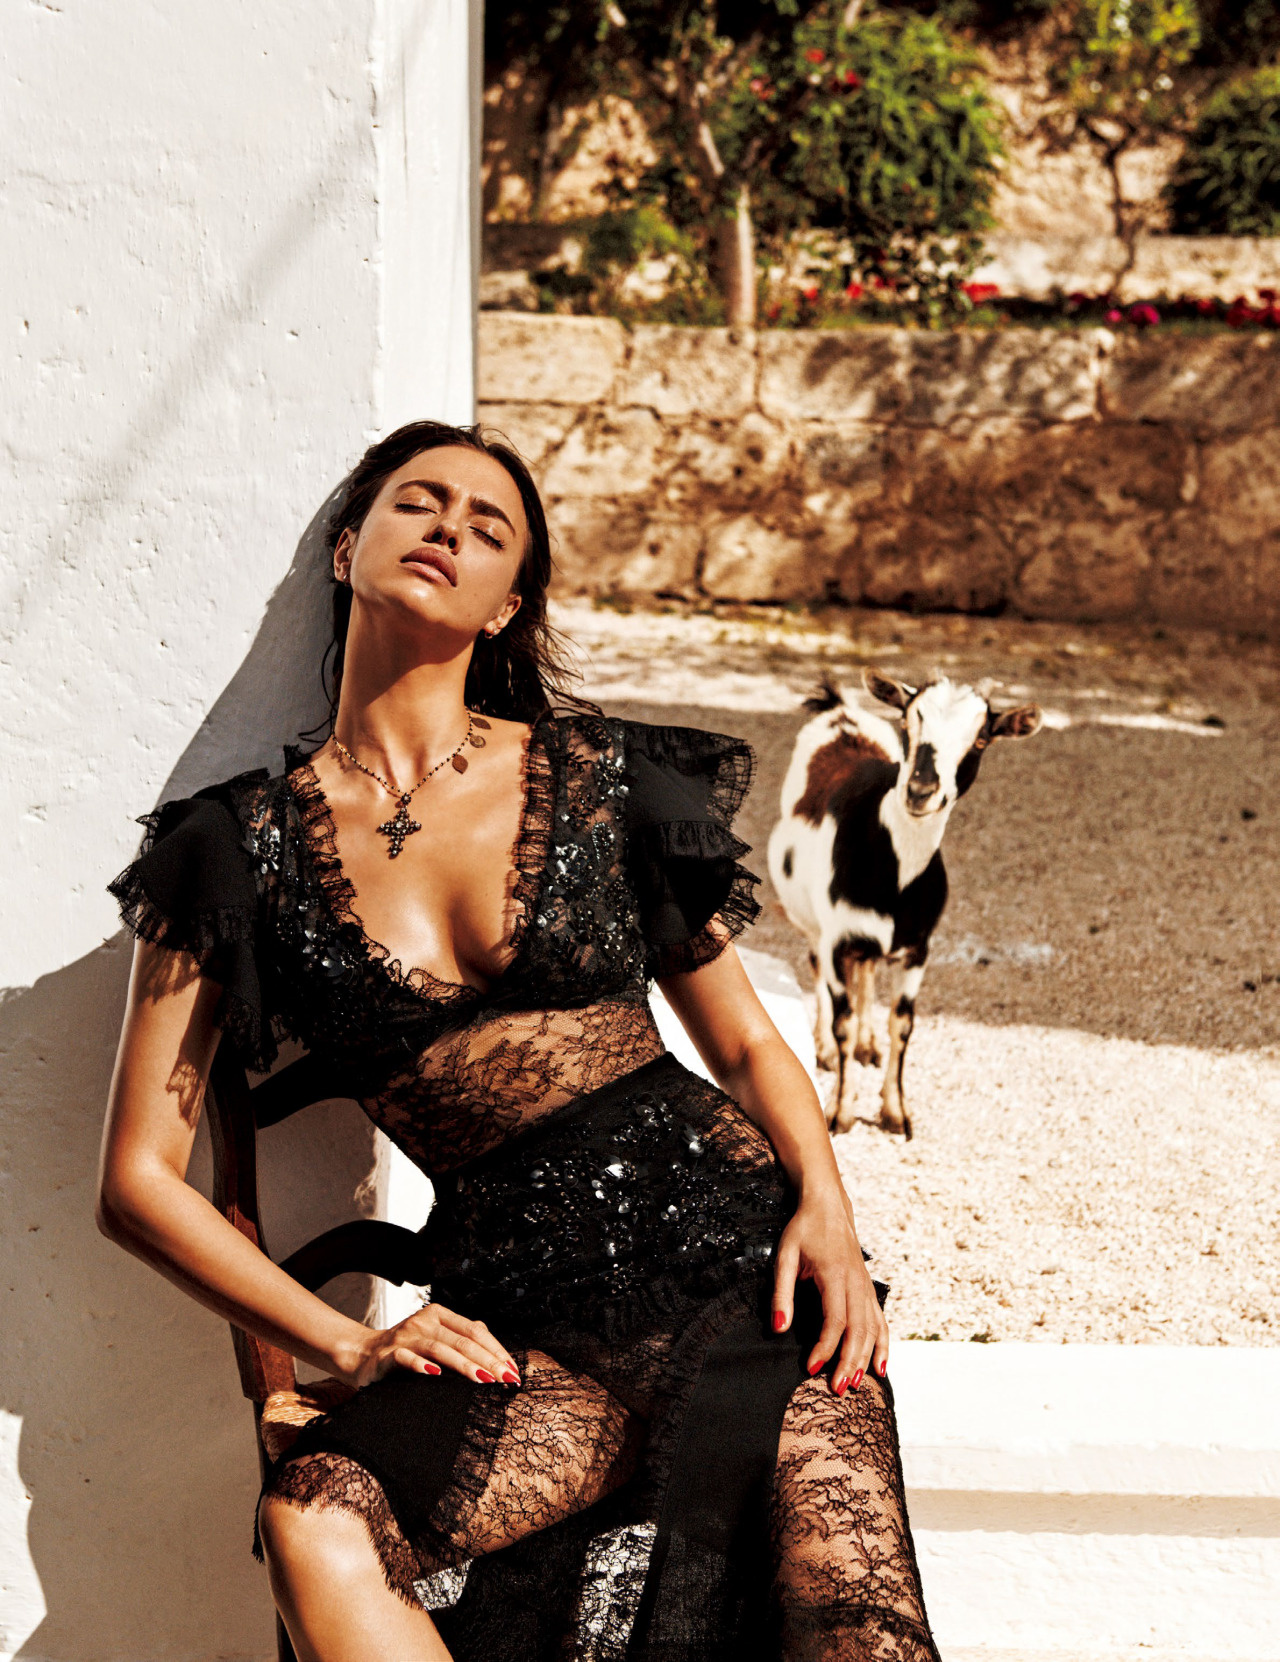 Irina Shayk In The Sun Of Italy Vogue Japan September 2016 / Giampaolo Sgura